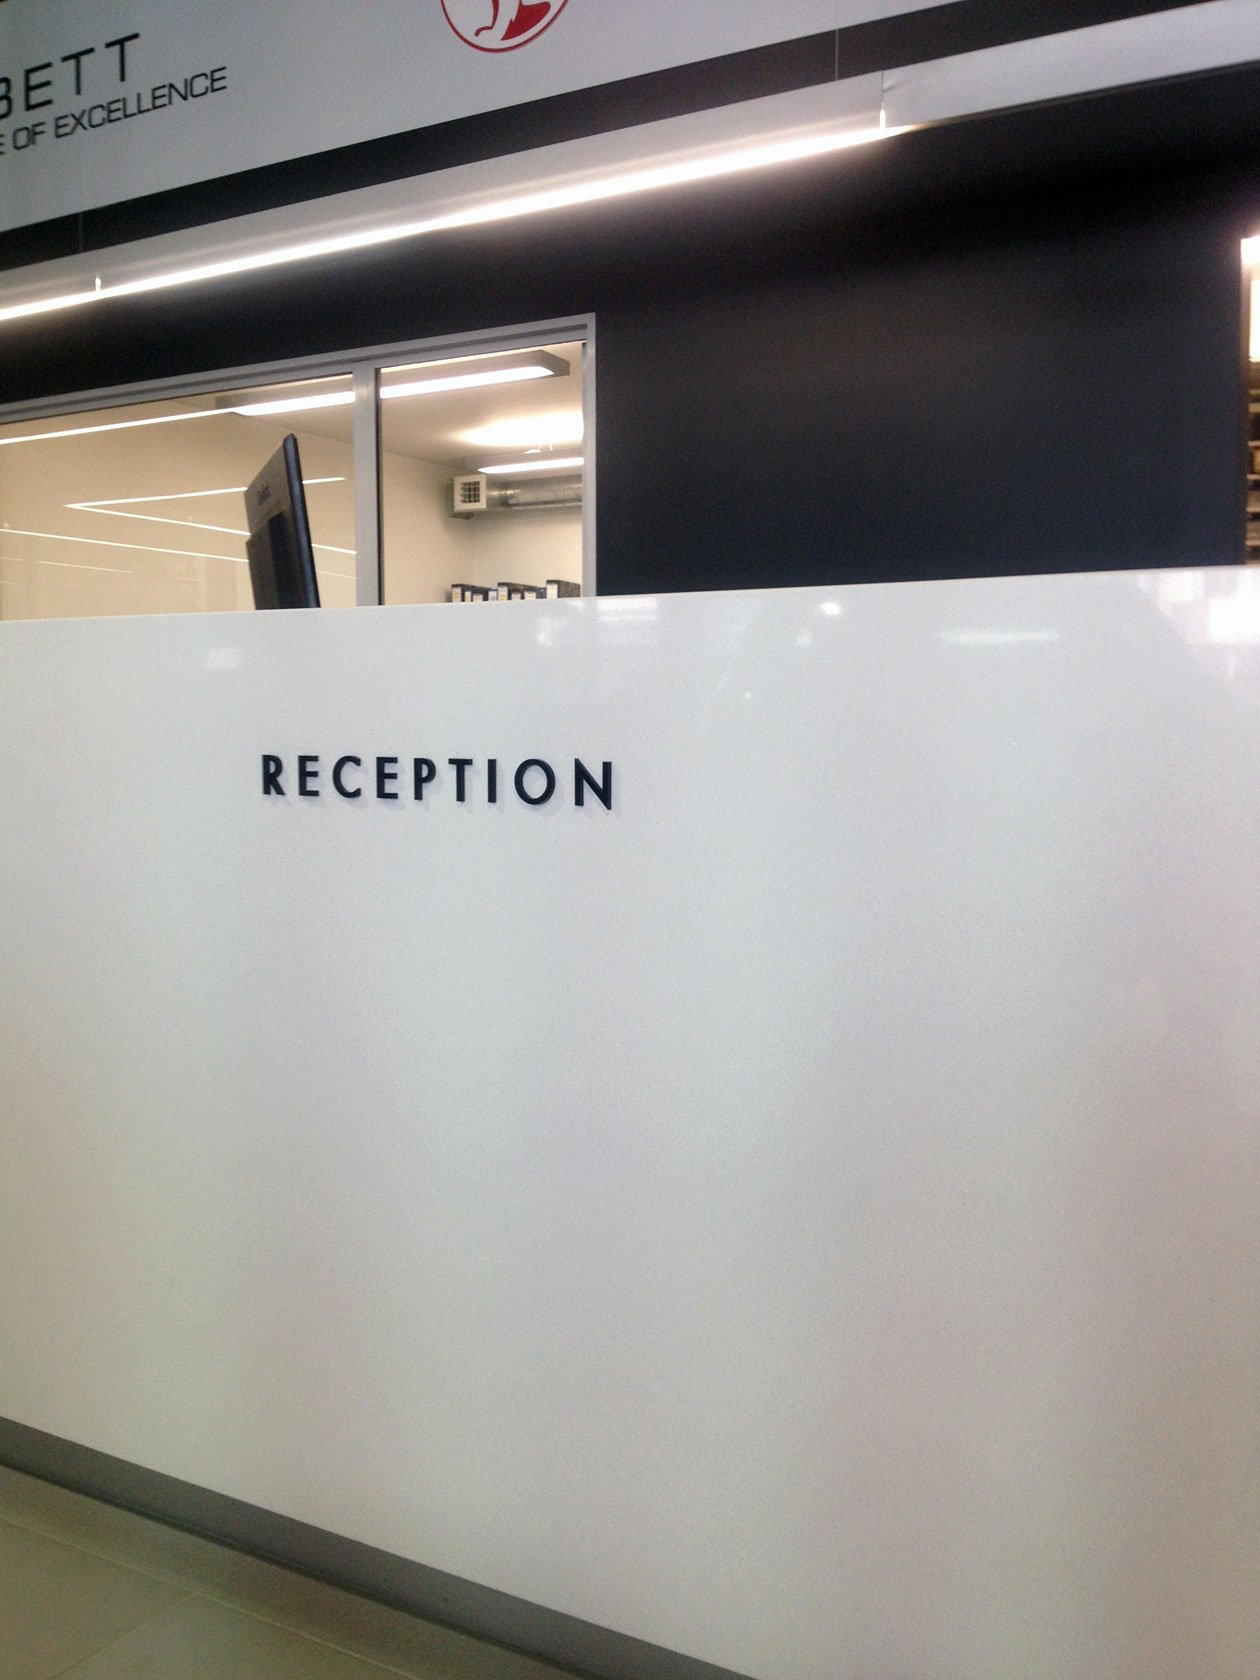 10mm thick laser cut black acrylic letters installed onto reception counter